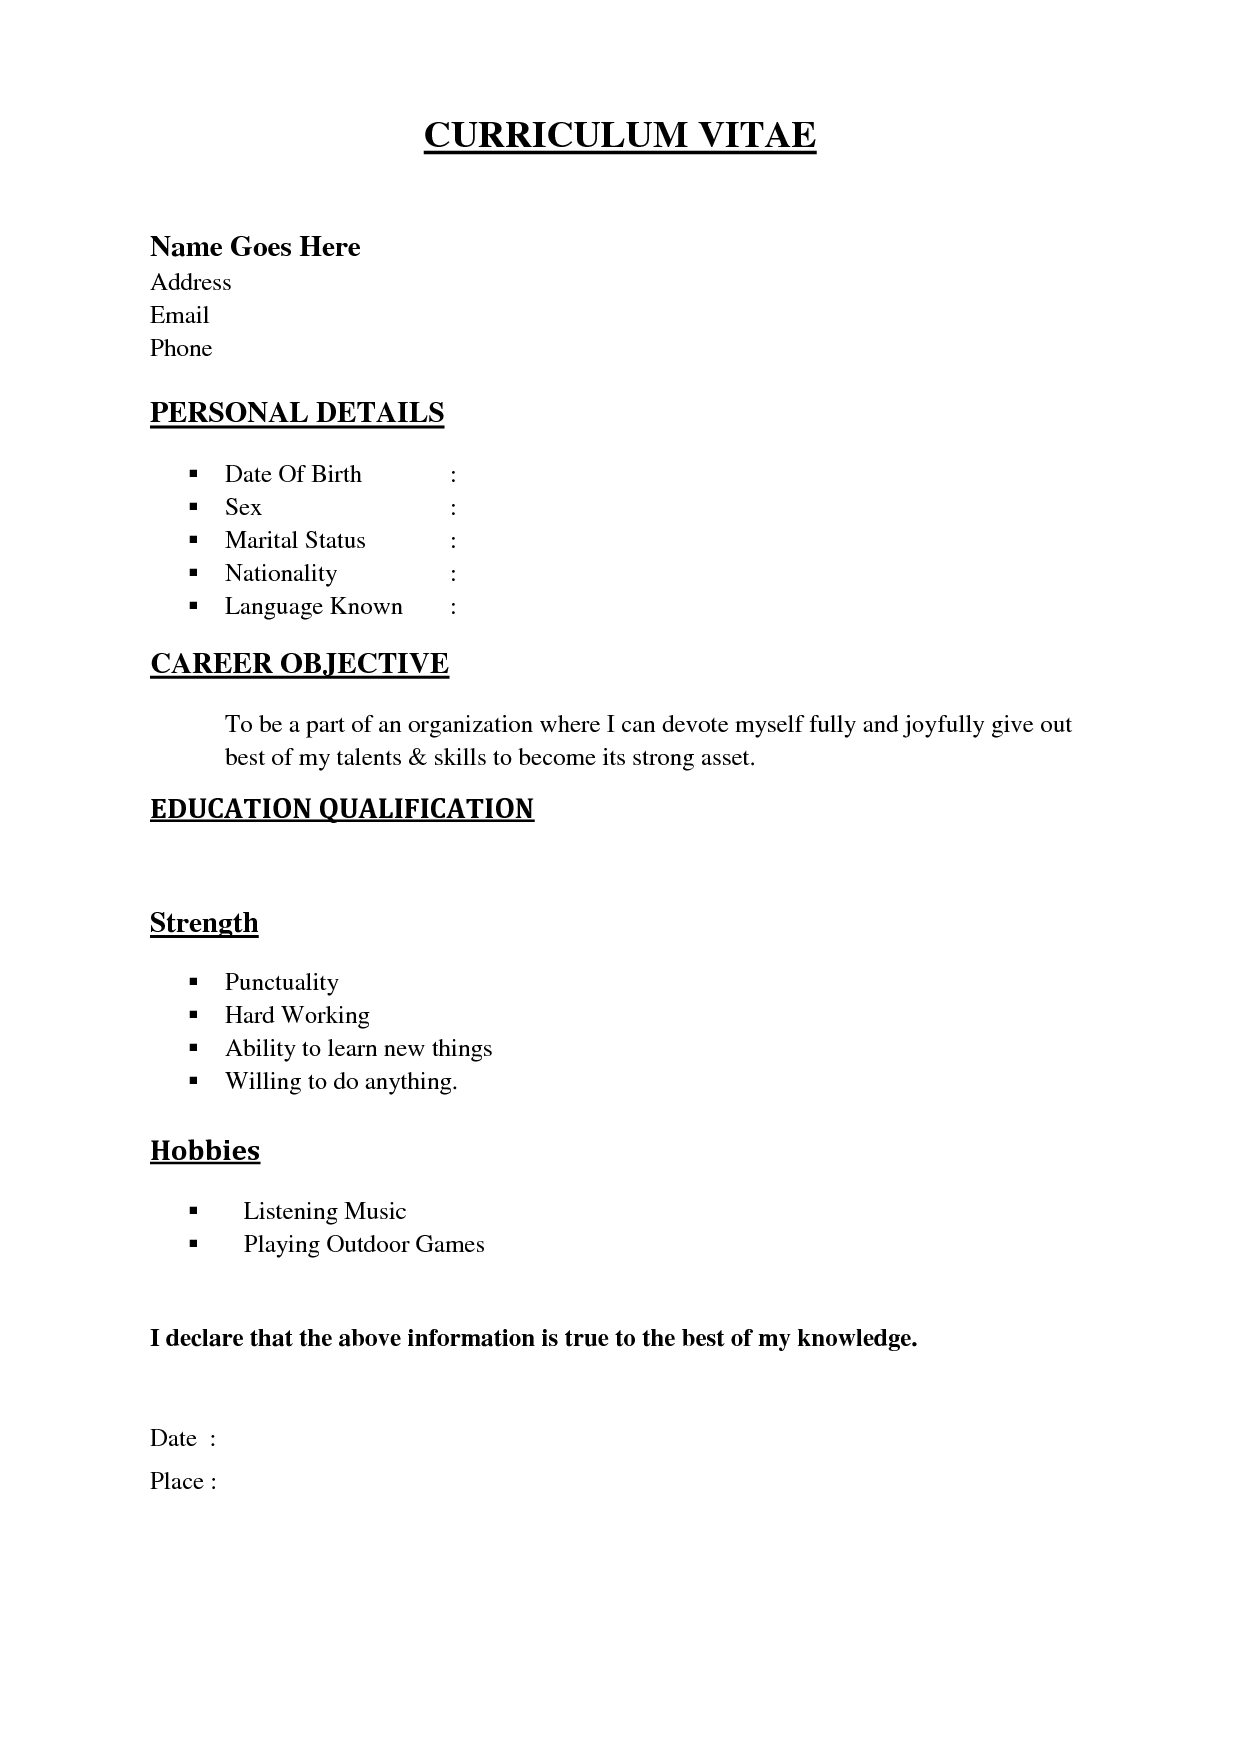 Resume Sample Format Template A7rs0xo7 Curriculum Vitae Sample